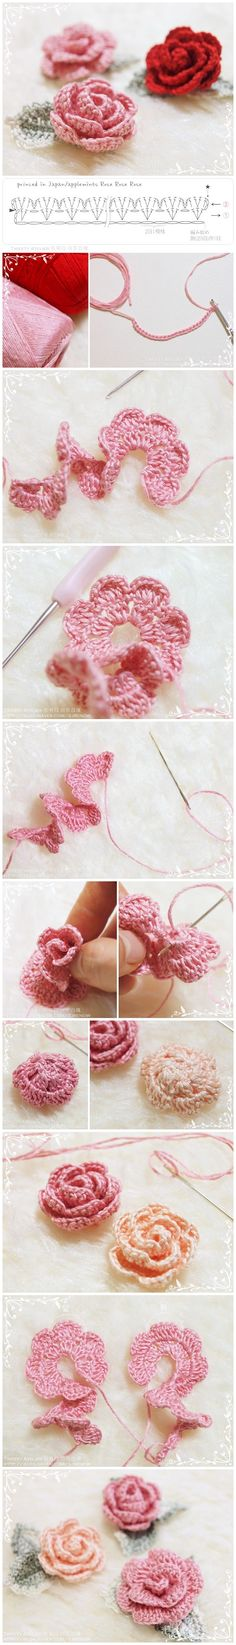 How to make hand-knitted rose